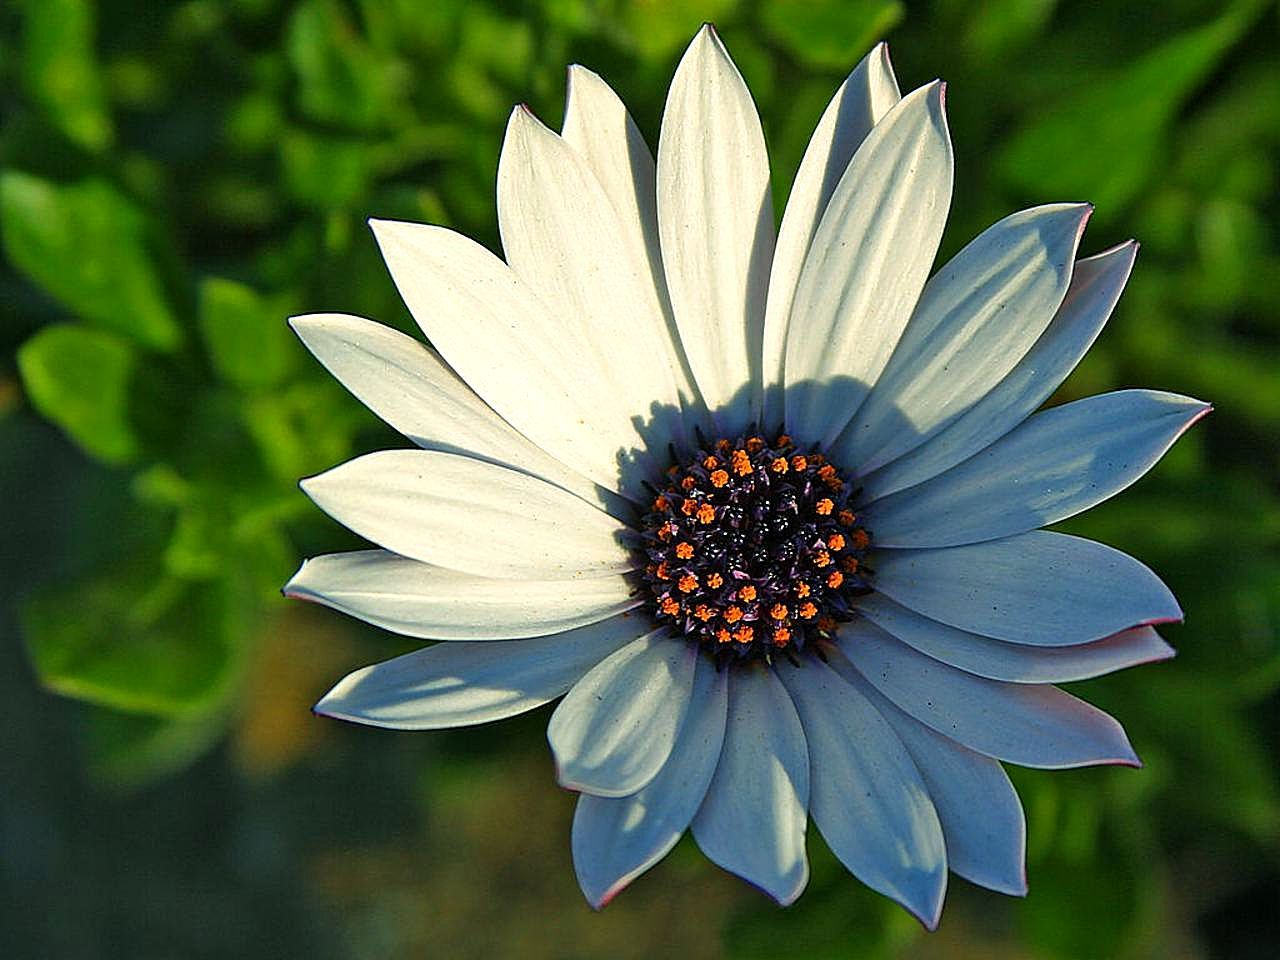 File Daisy daisies flowers petals Wikimedia mons